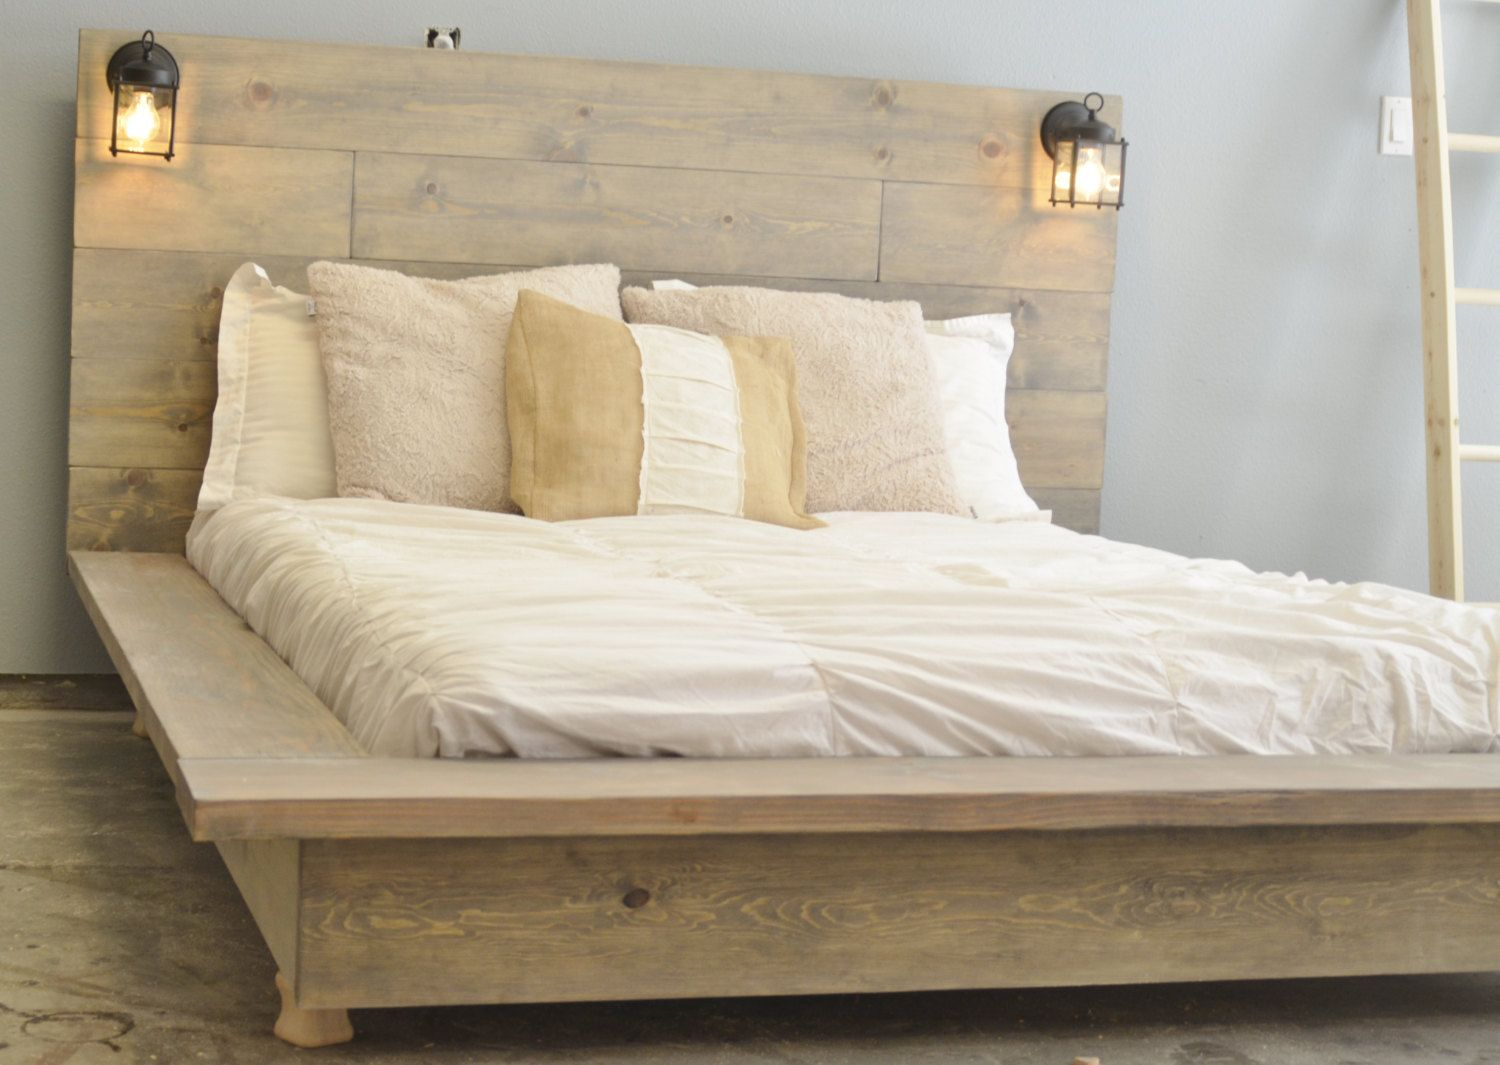 Floating Wood Platform Bed Frame With Lighted Headboard Quilmes Wood Platform Bed Build A